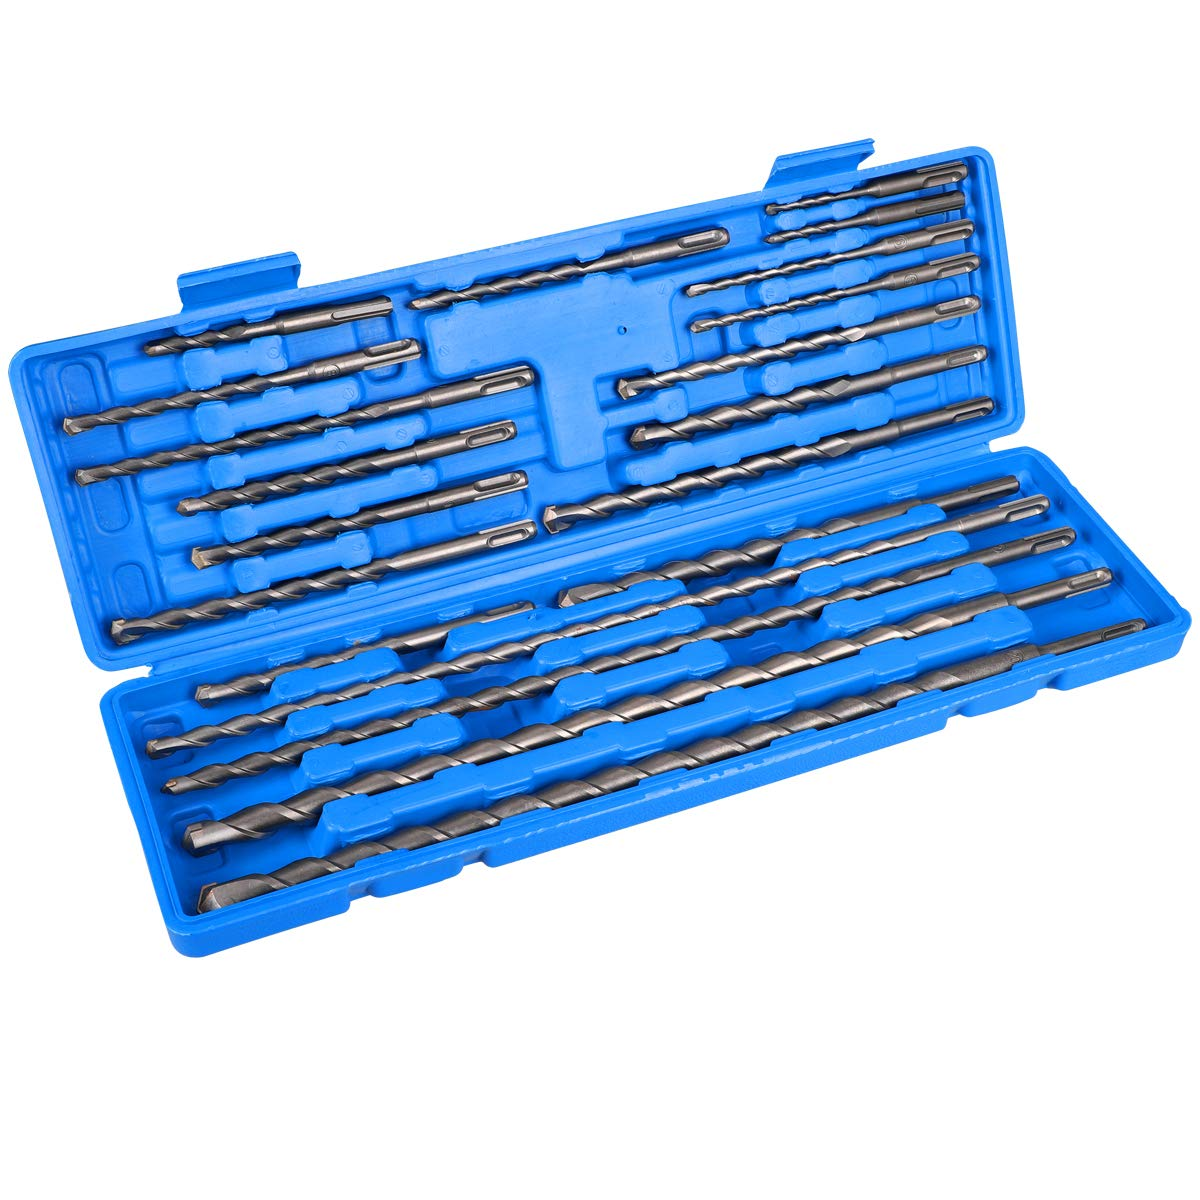 COMOWARE 20pcs All items in the store Phoenix Mall Rotary Hammer Drill Bits - Set SDS Concrete Plus